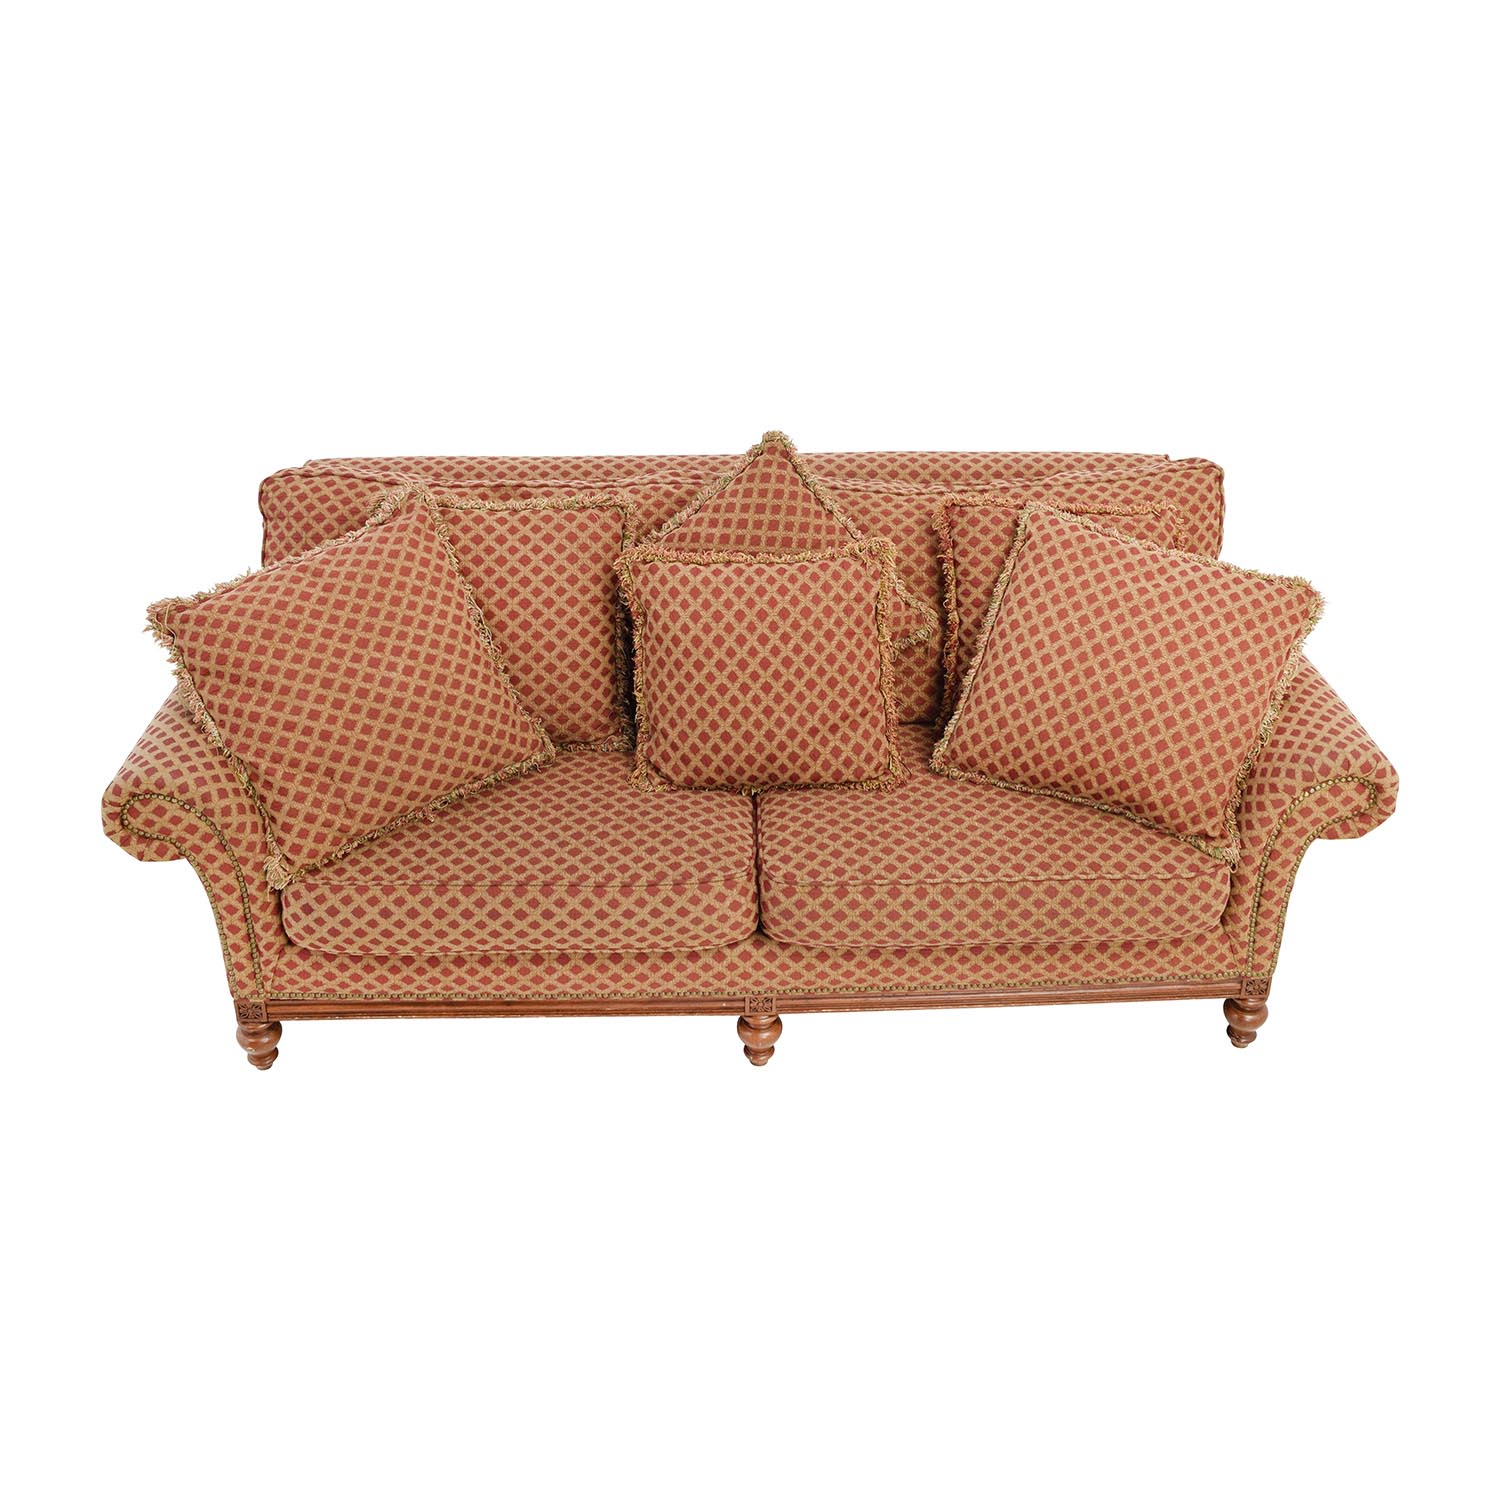 55% OFF Art Deco Leather Sofa Sofas